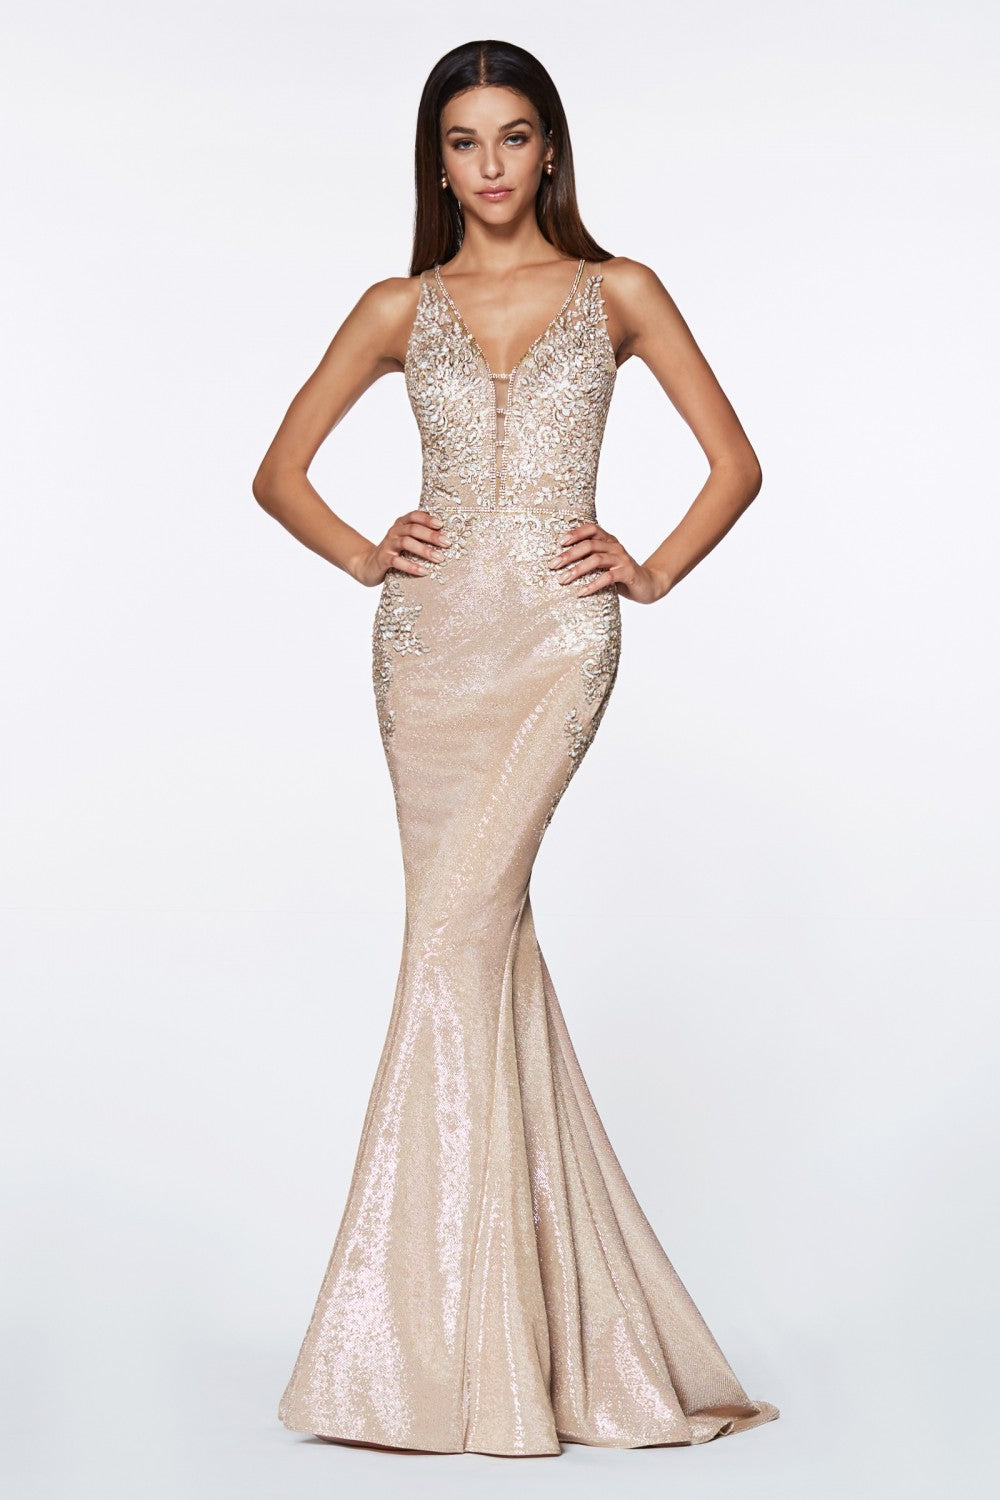 Fitted Metallic Gown With Beaded Lace Details And Deep Plung Neckline